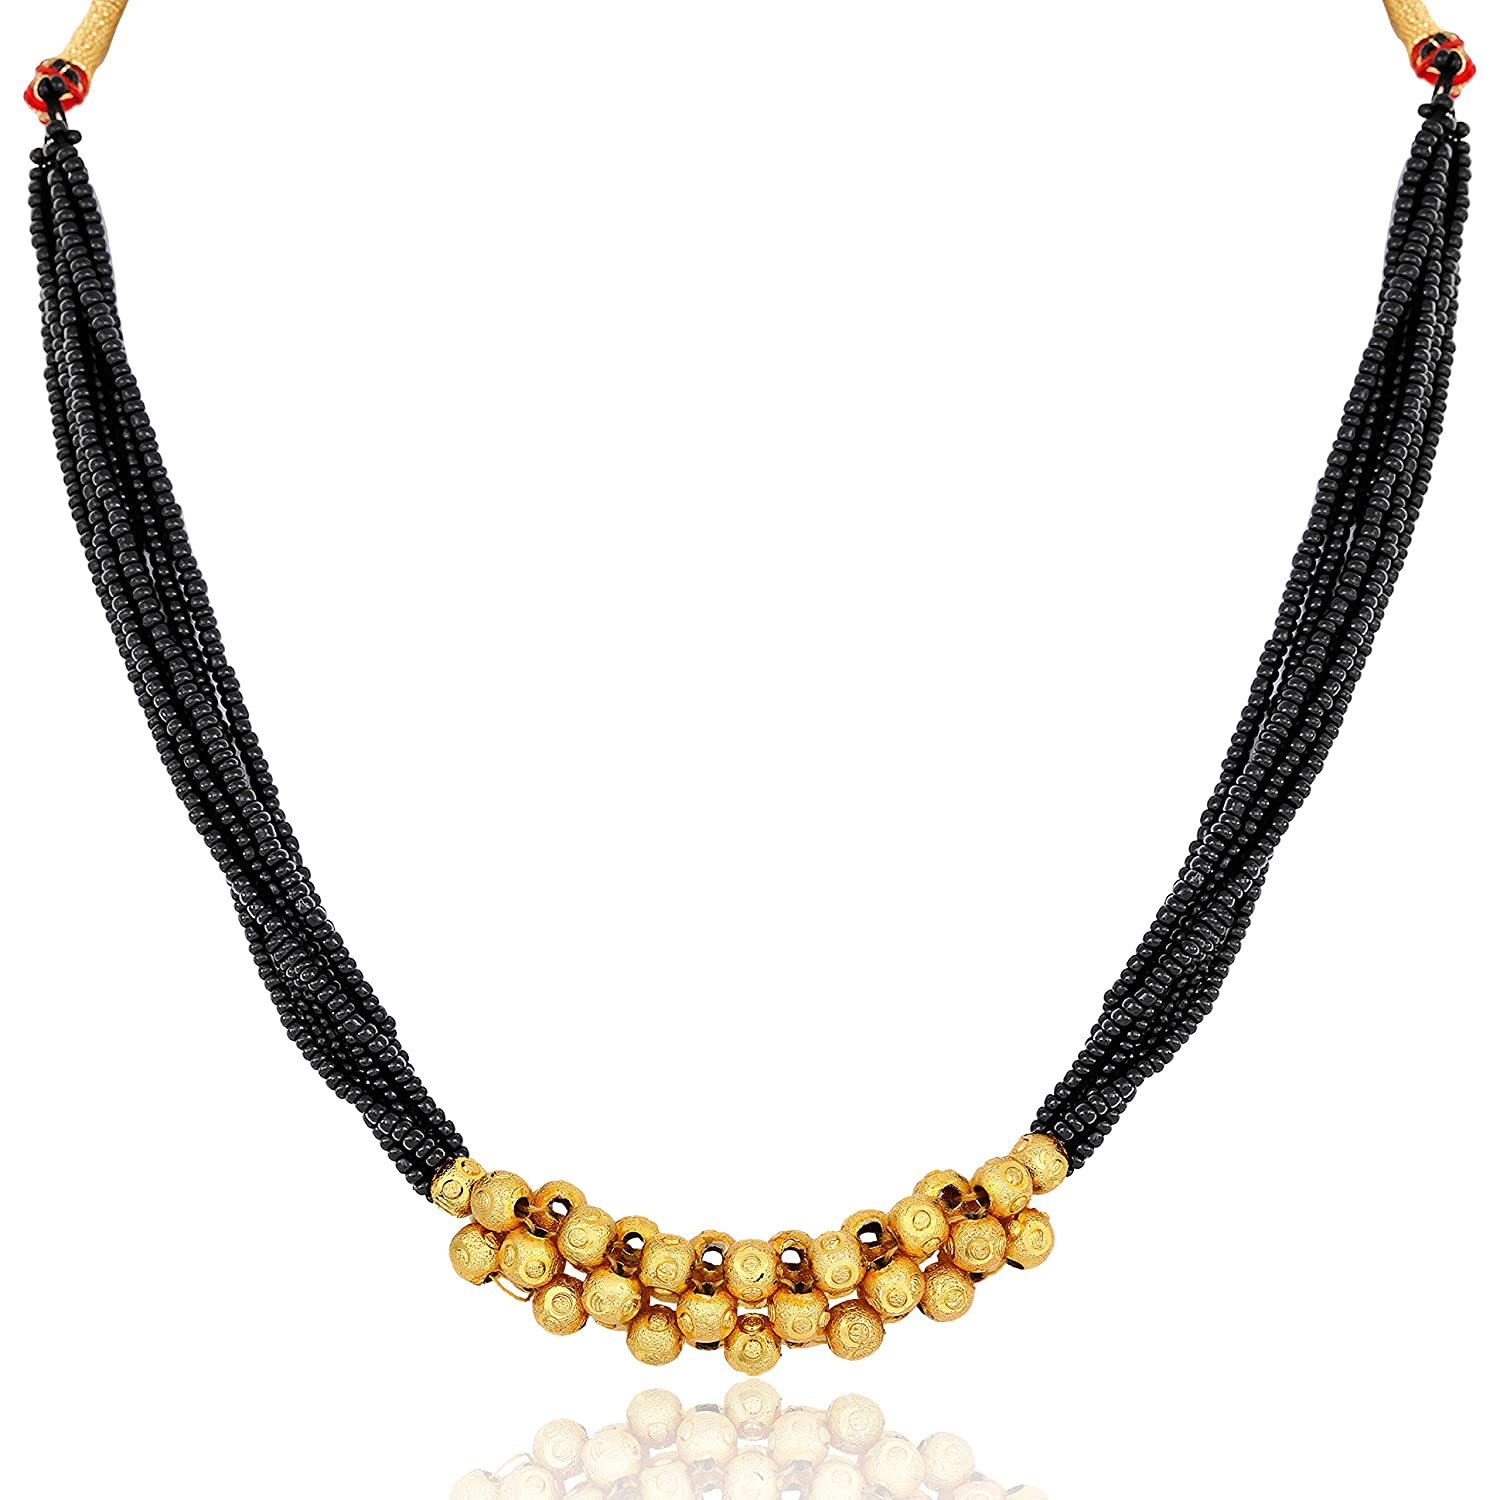 Amaal Mangal Sutra Traditional Jewellery Gold Plated Maharashtrianthushi Mangalsutra Pendant Necklace For Women Girls Jewelry Set Thushi A117